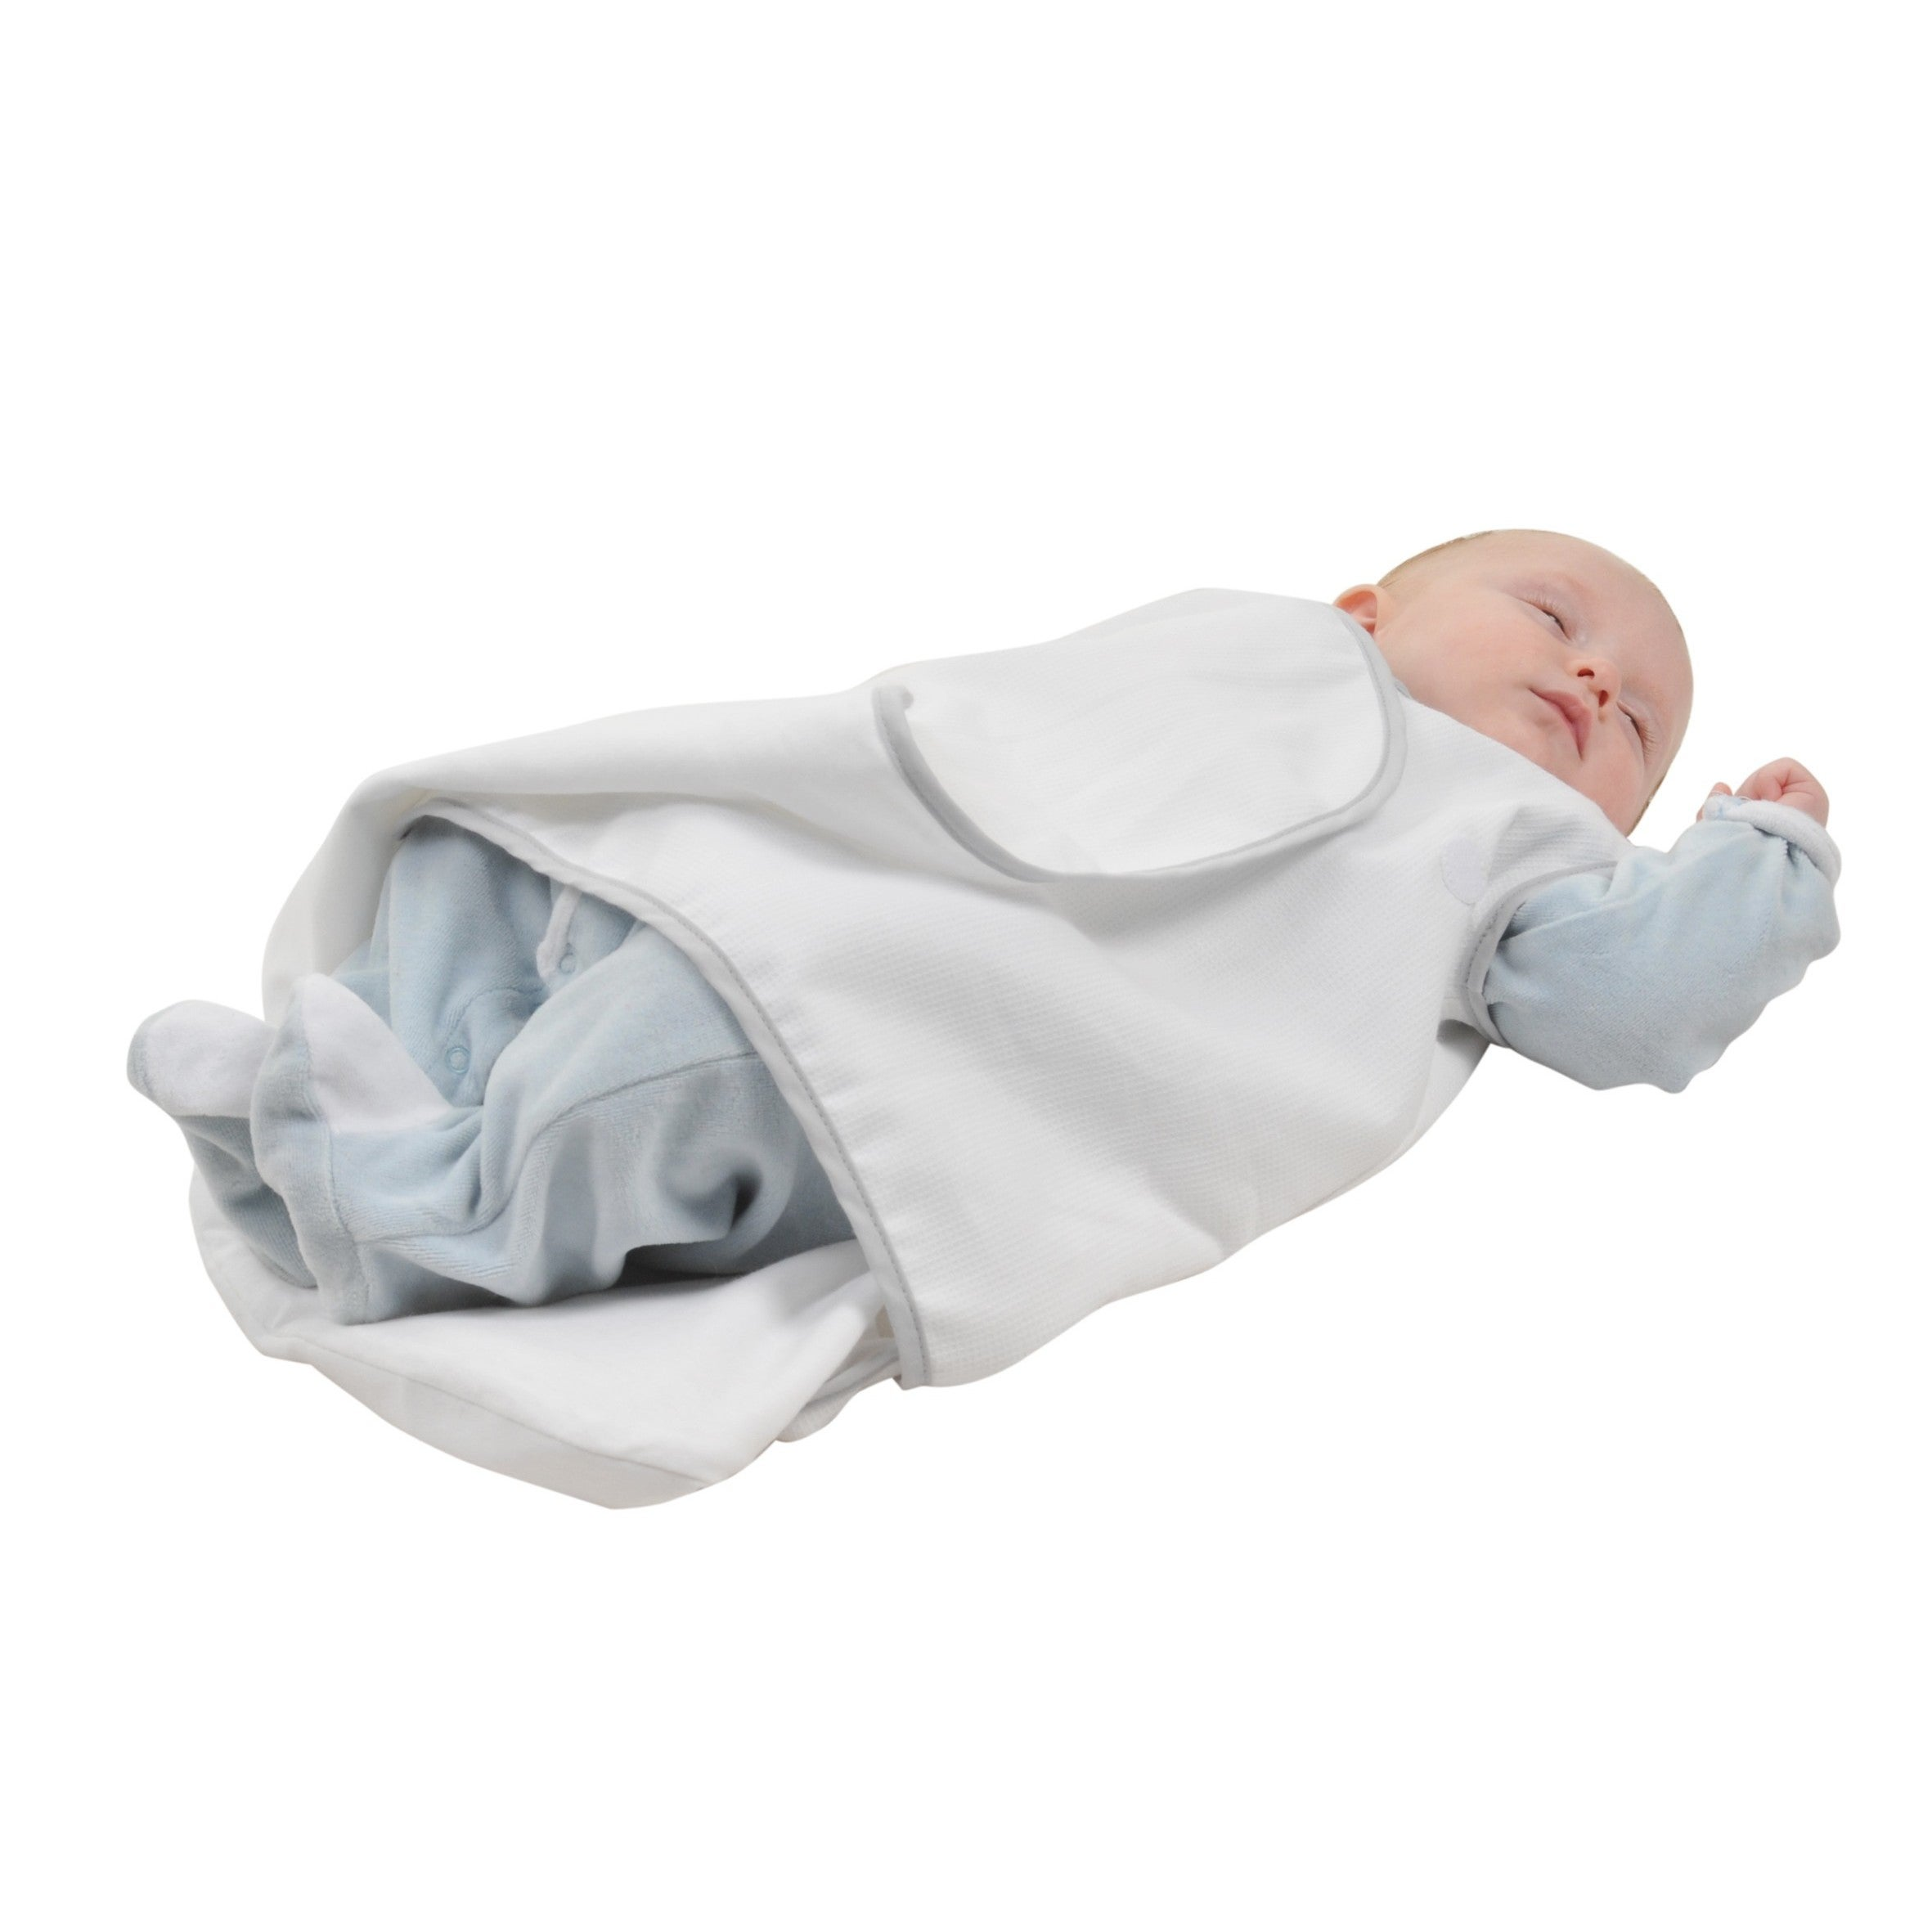 Shop Candide Baby Luxury White Swaddling Blanket and Infant Sleeper Bag  Bundle - On Sale - Free Shipping Today - Overstock - 16753747 850eac7fb